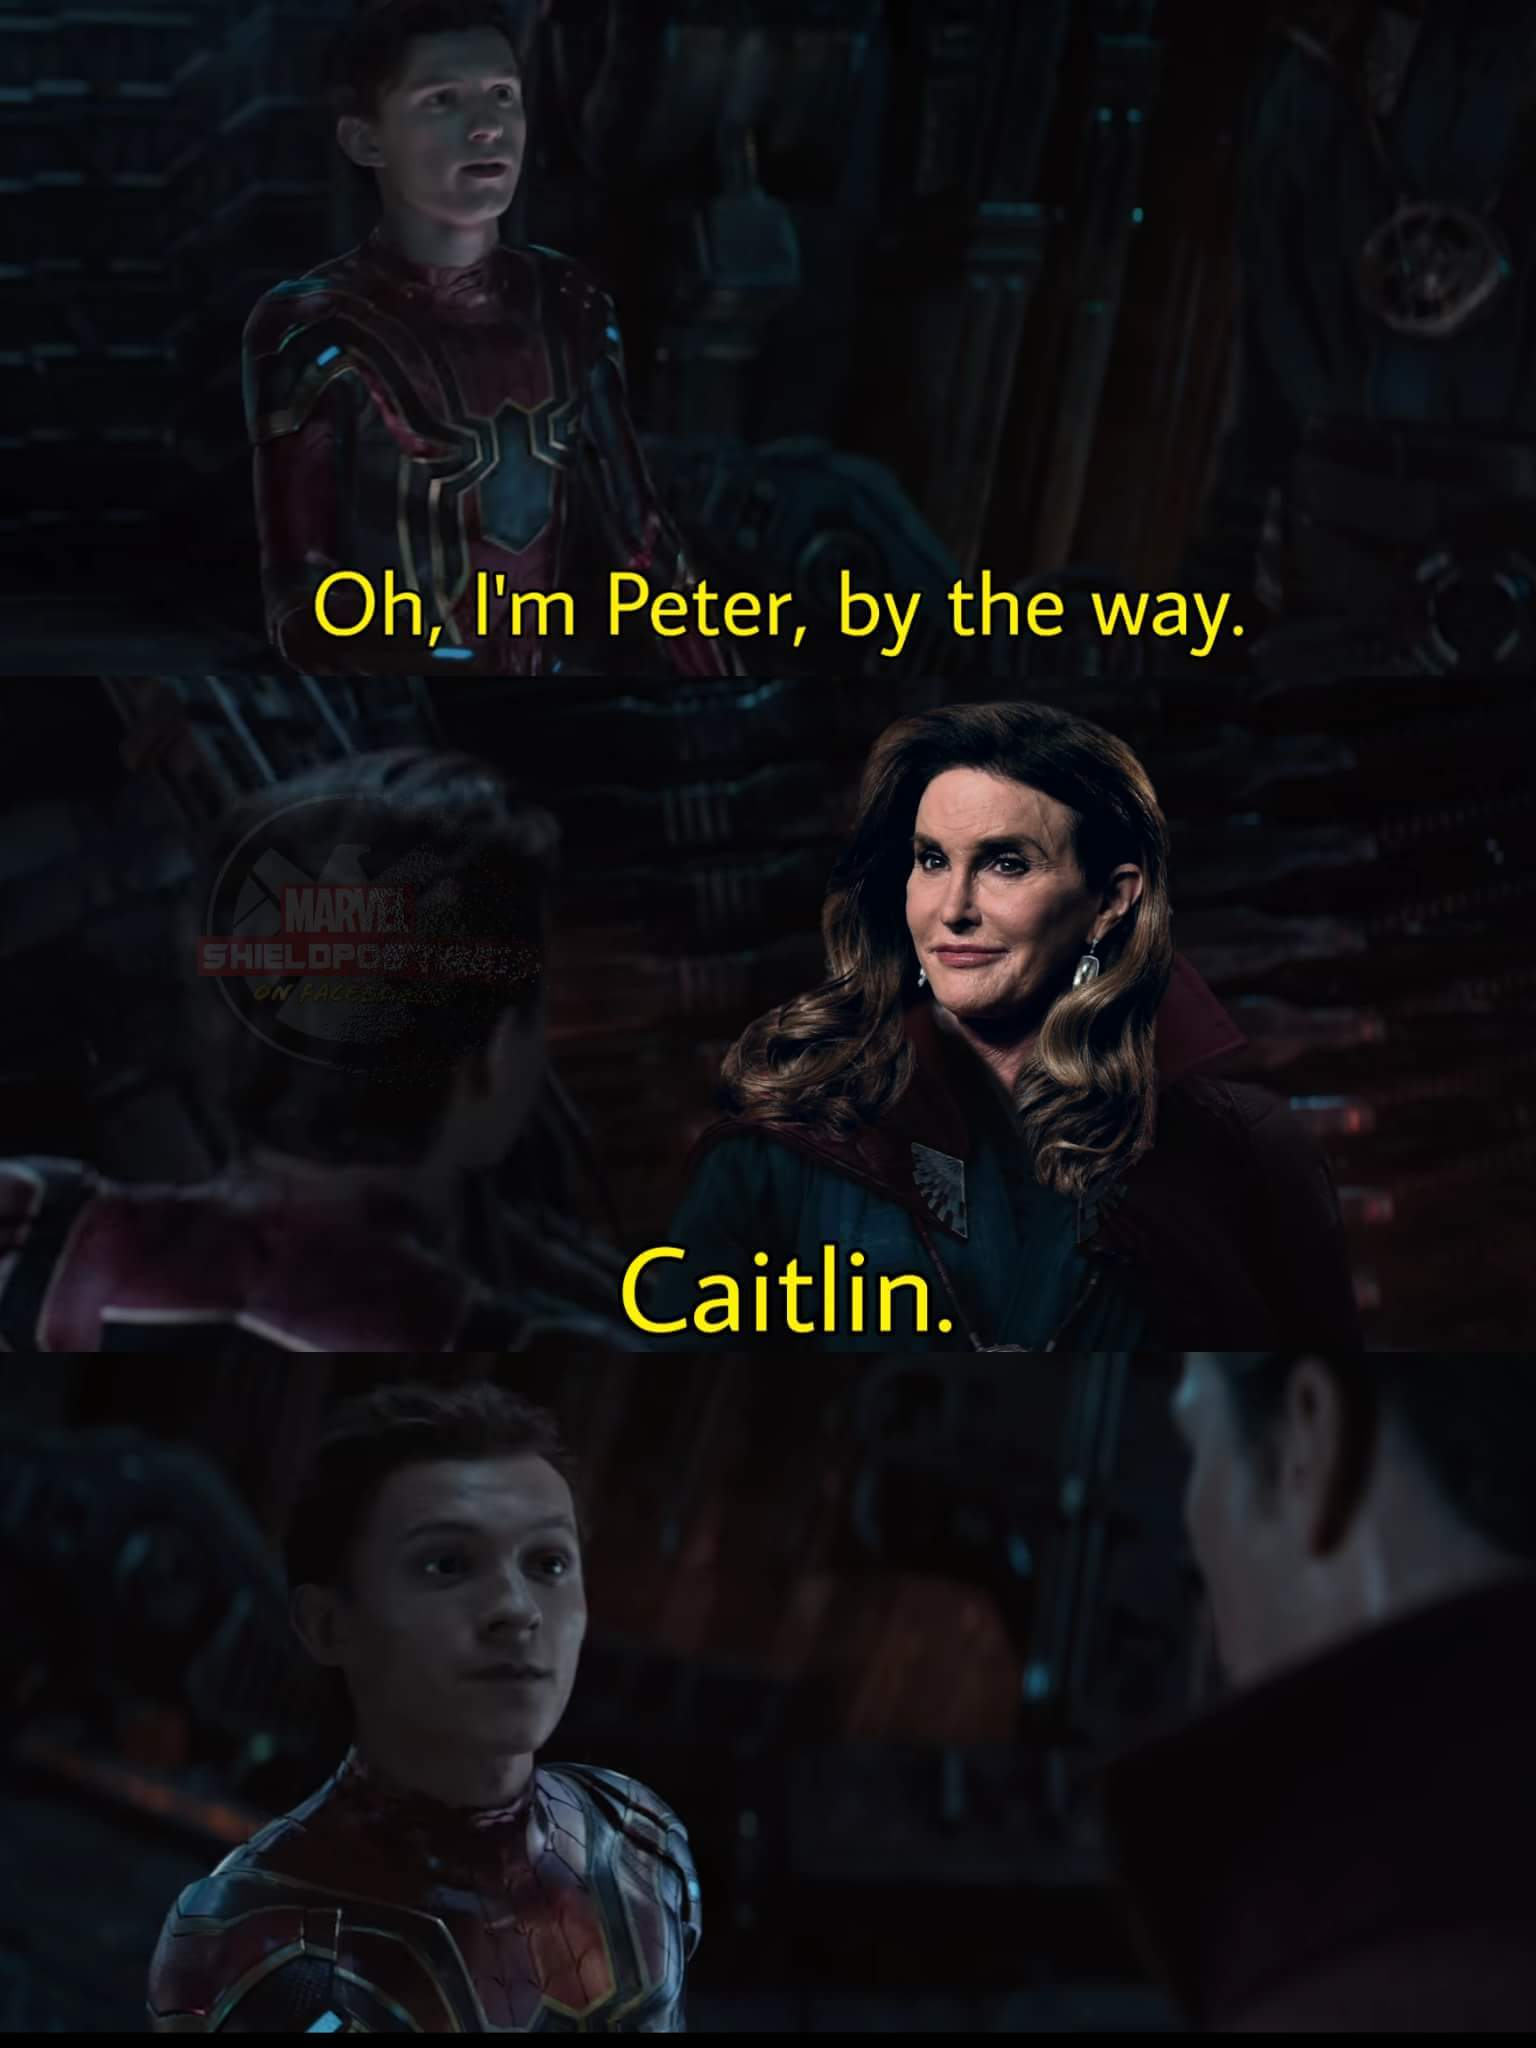 Could the mcu go downhill after A4? - meme